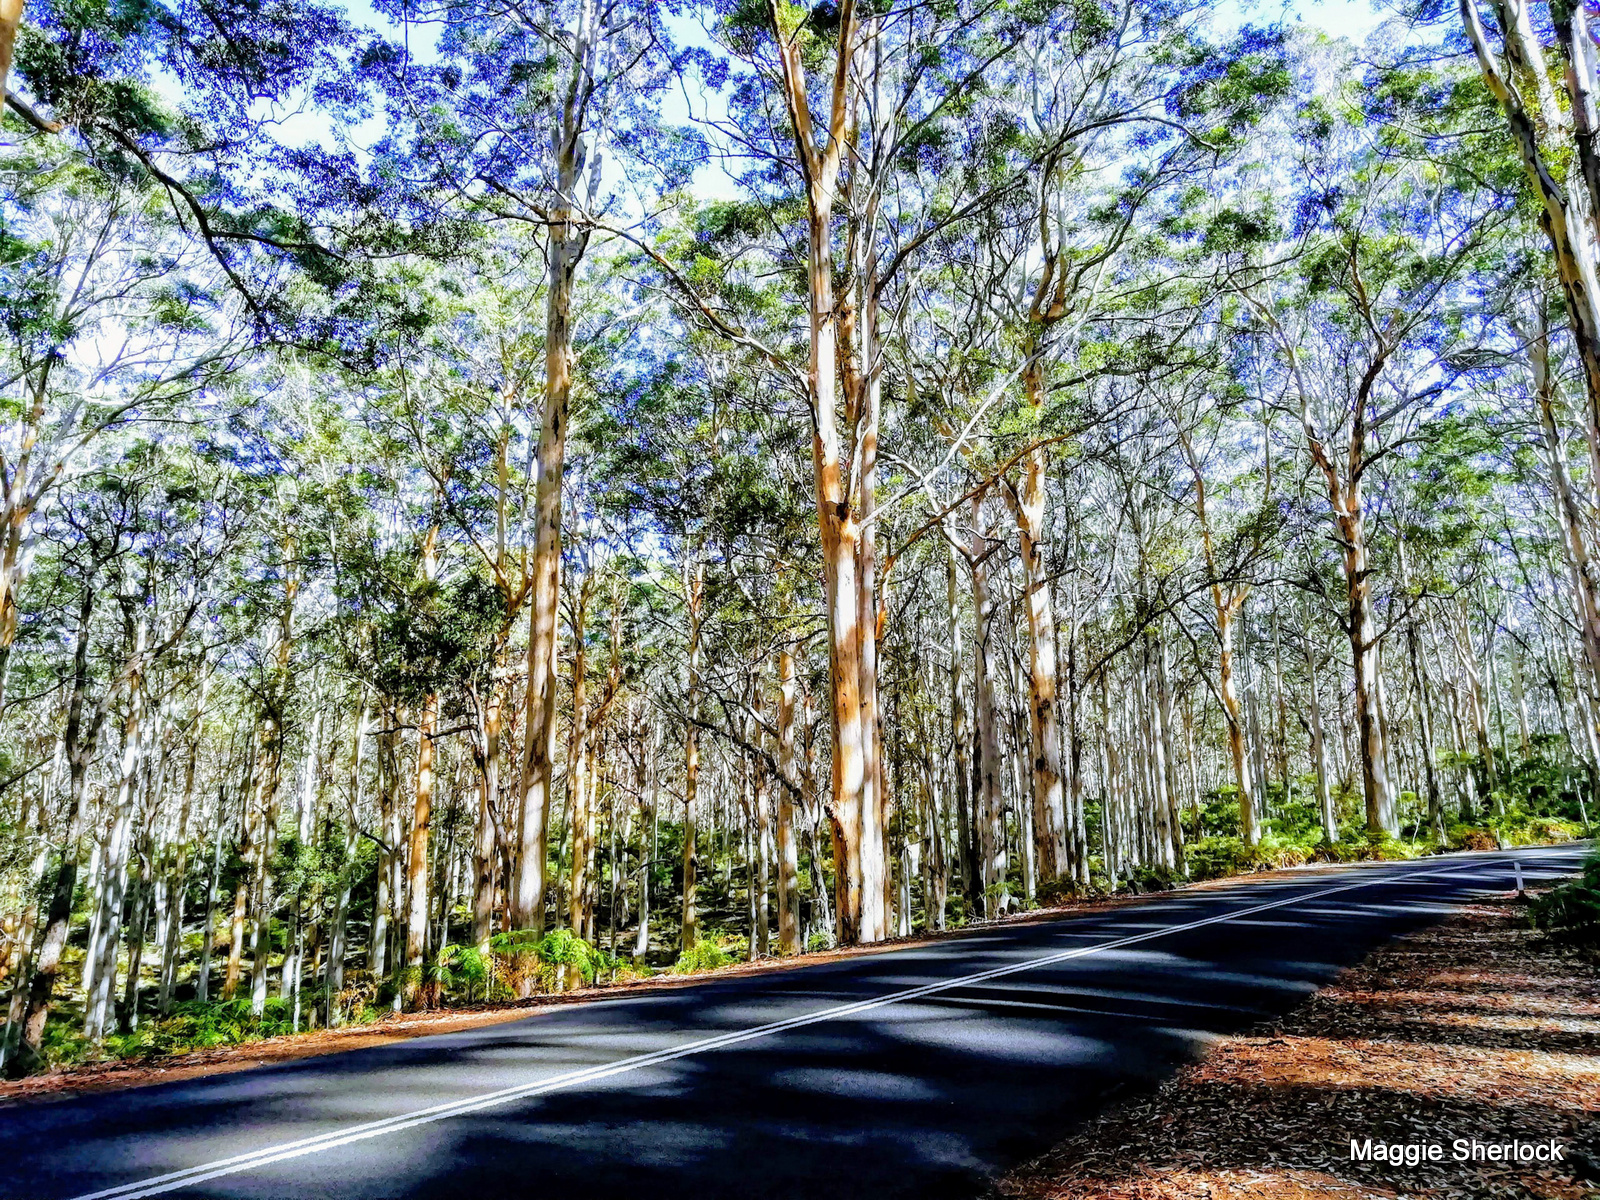 Image of a forest by a road by Maggie Sherlock